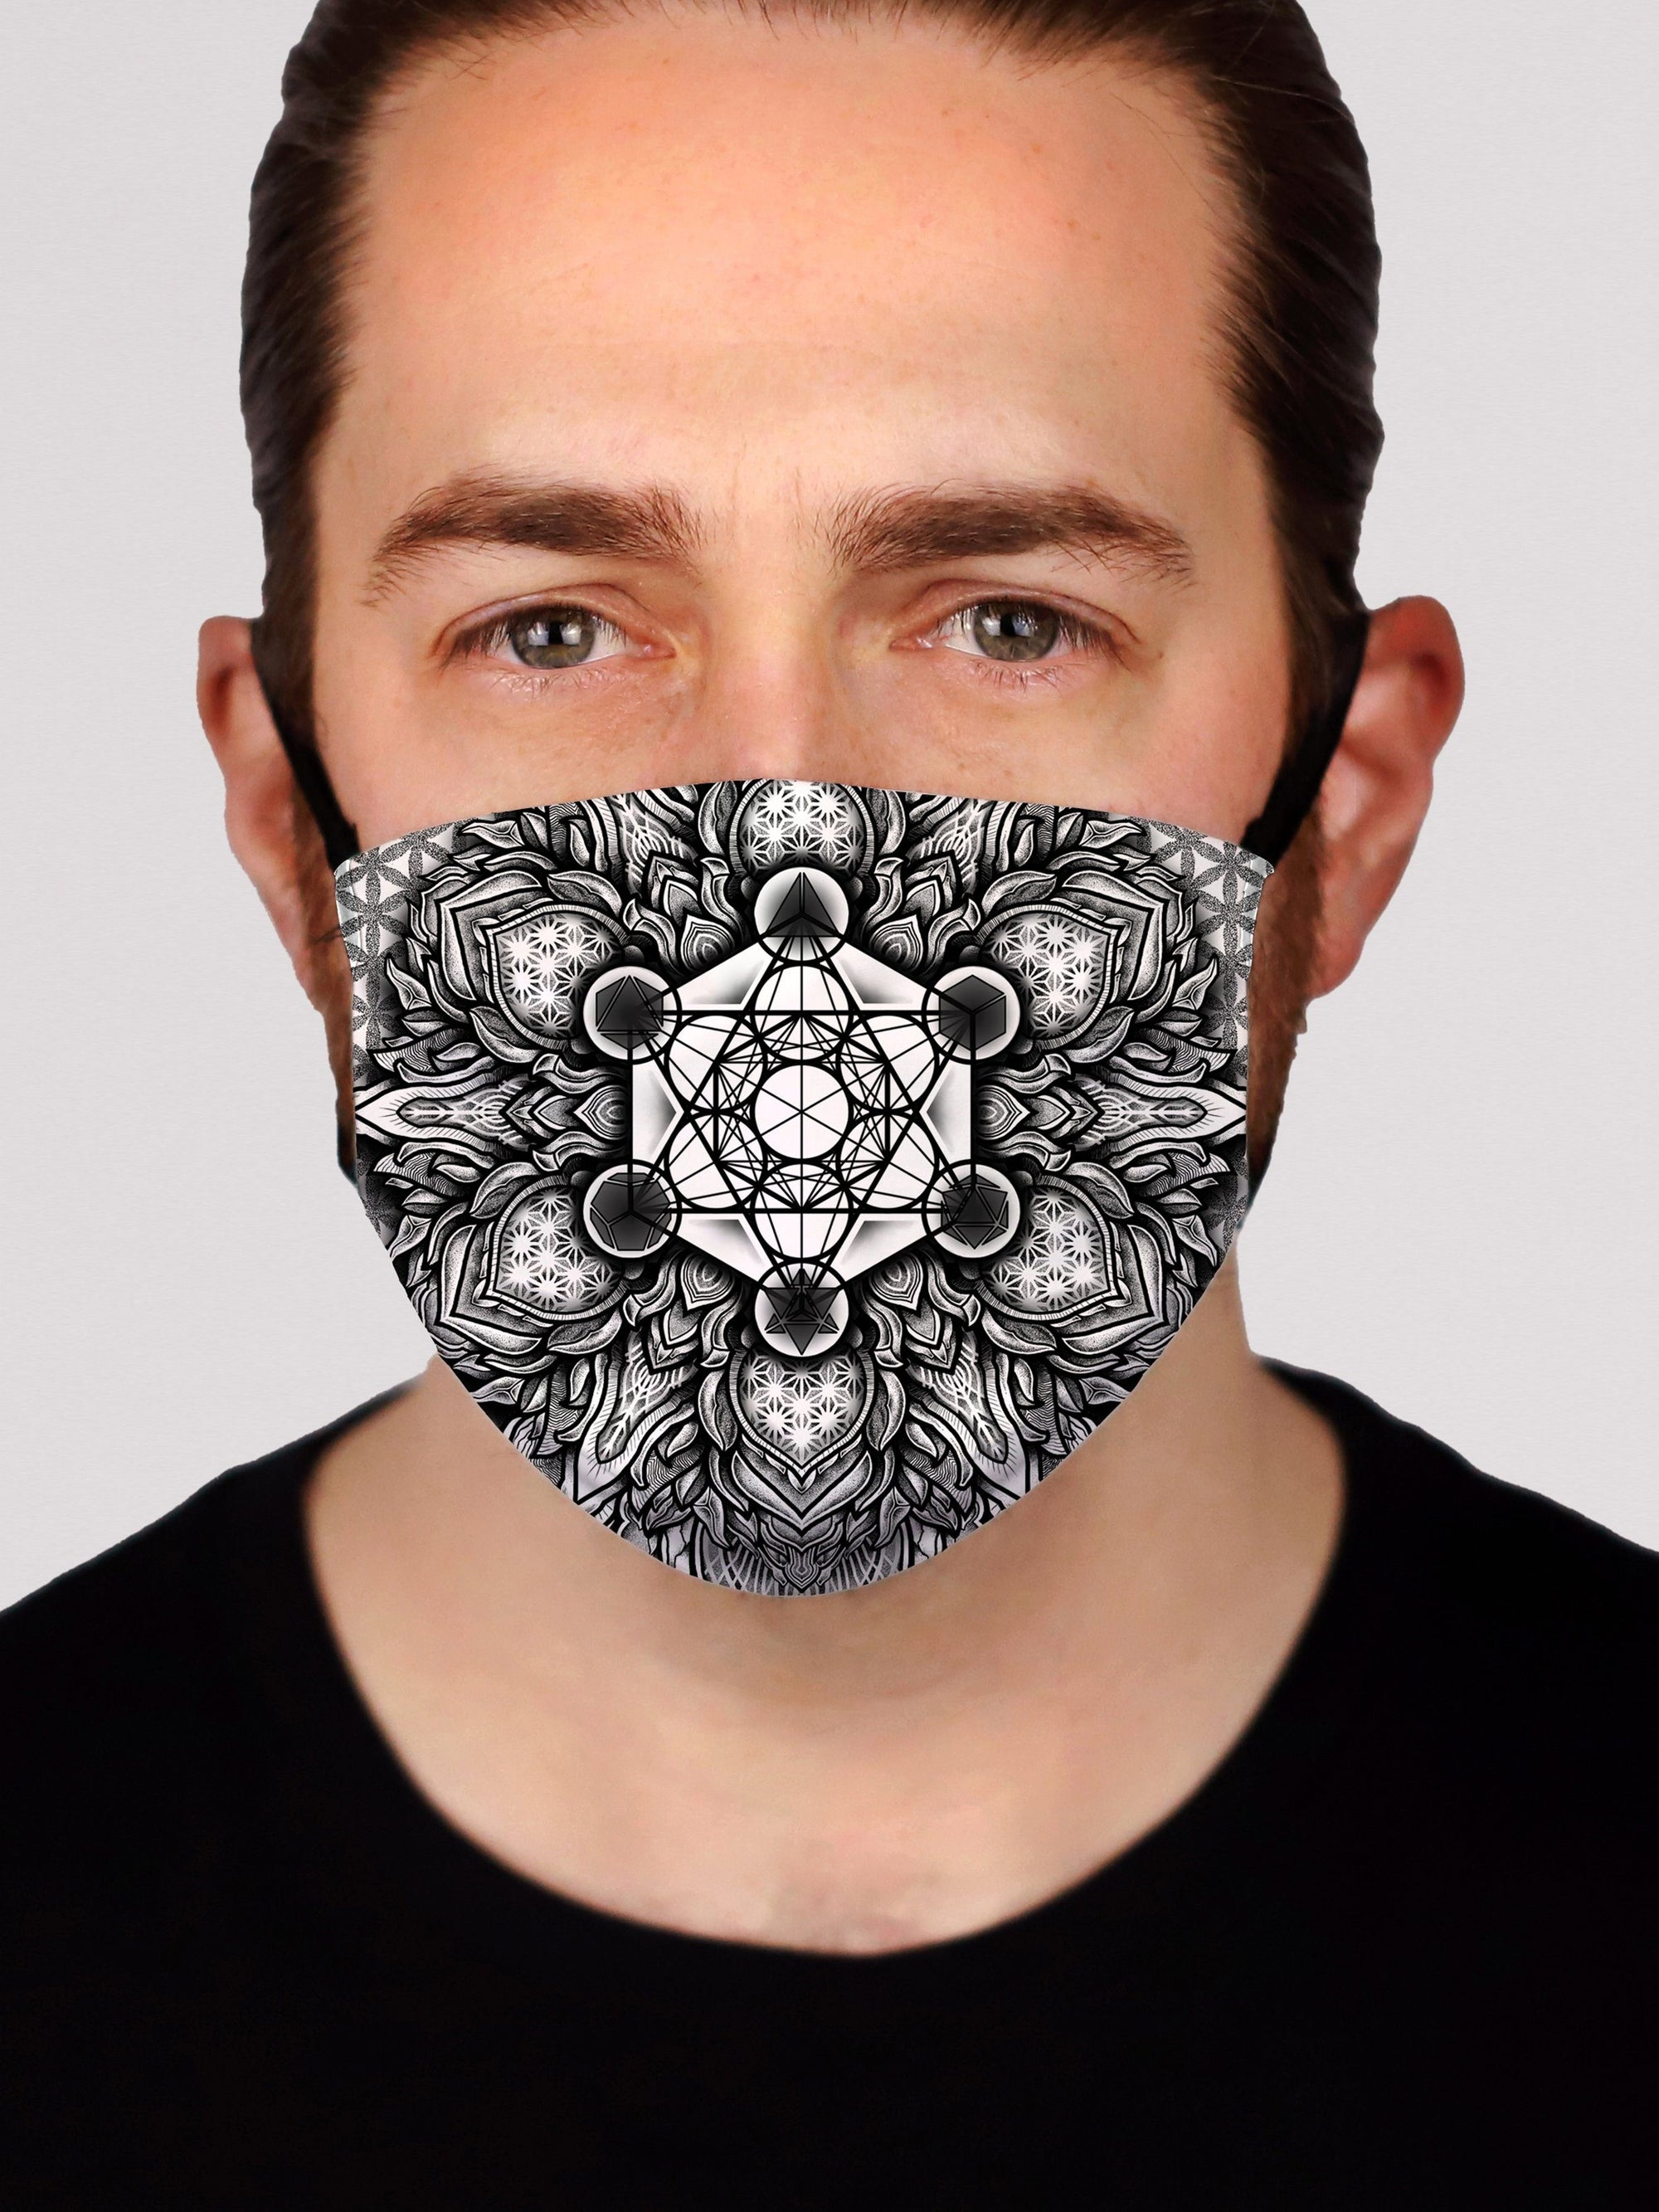 Metatron's Cube Face Mask Electro Threads